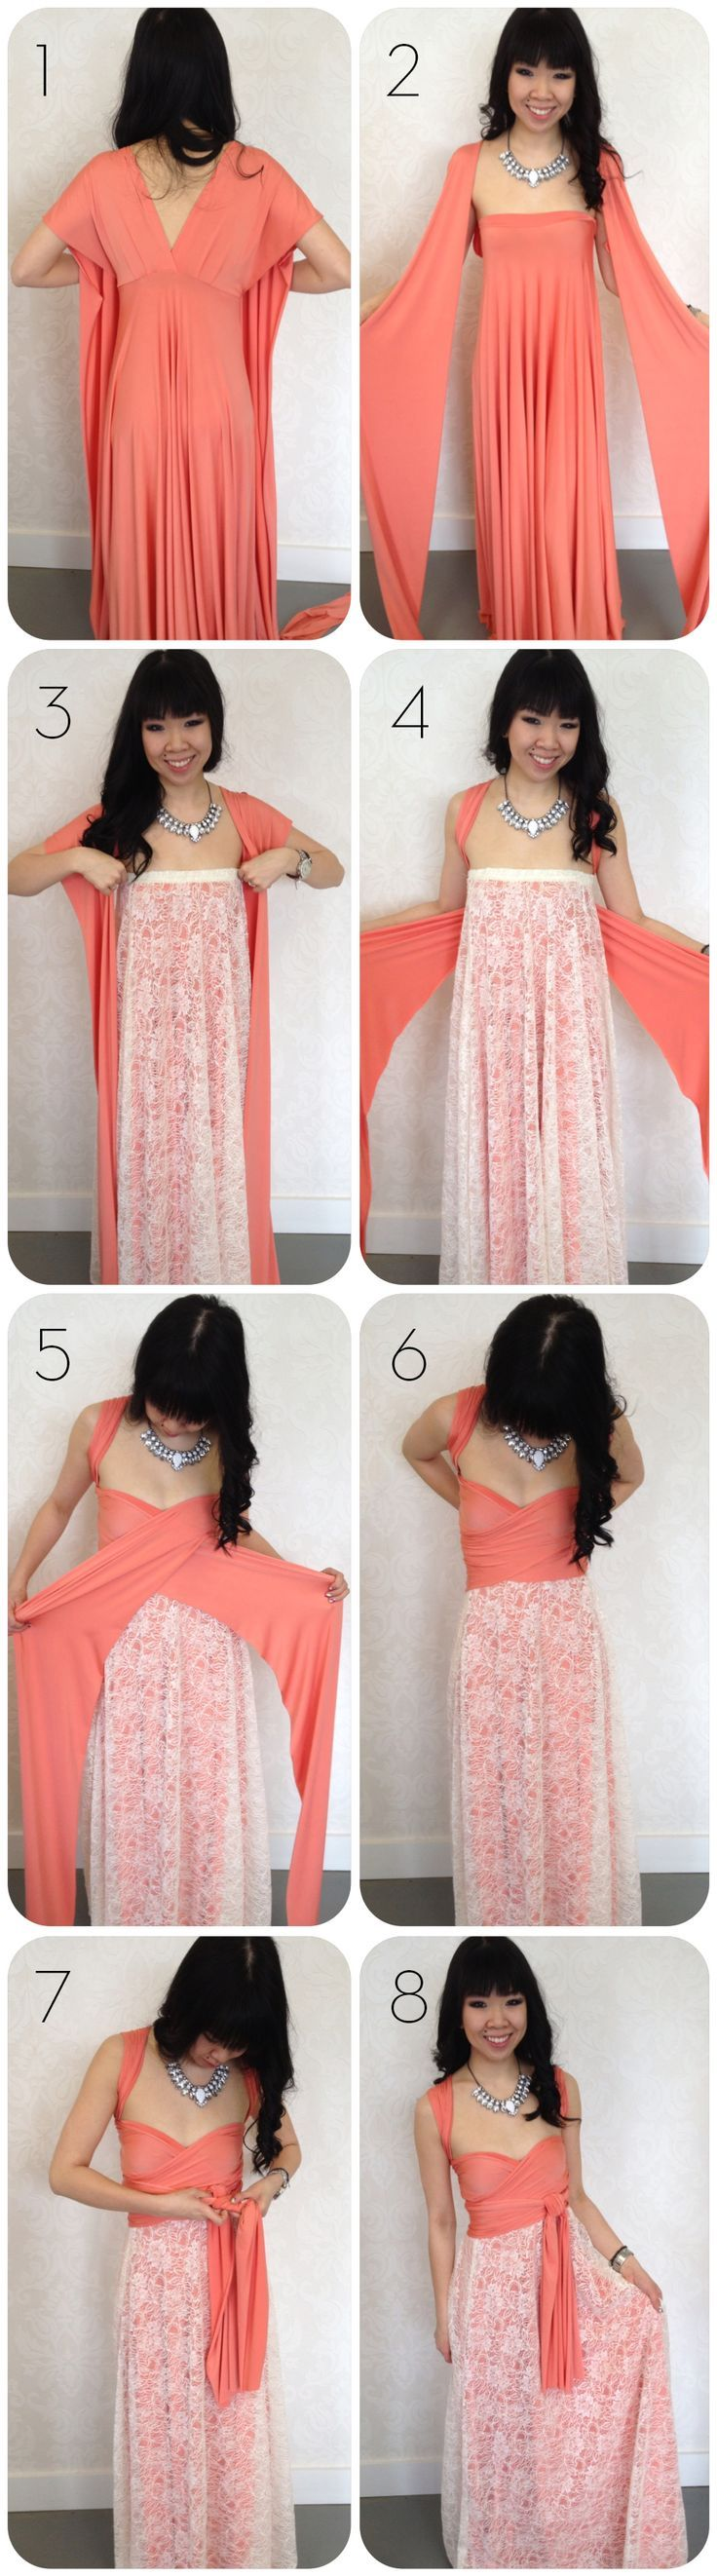 Convertible dress!!! - I have a great convertible maxi at home I'm always looking for new ways to tie